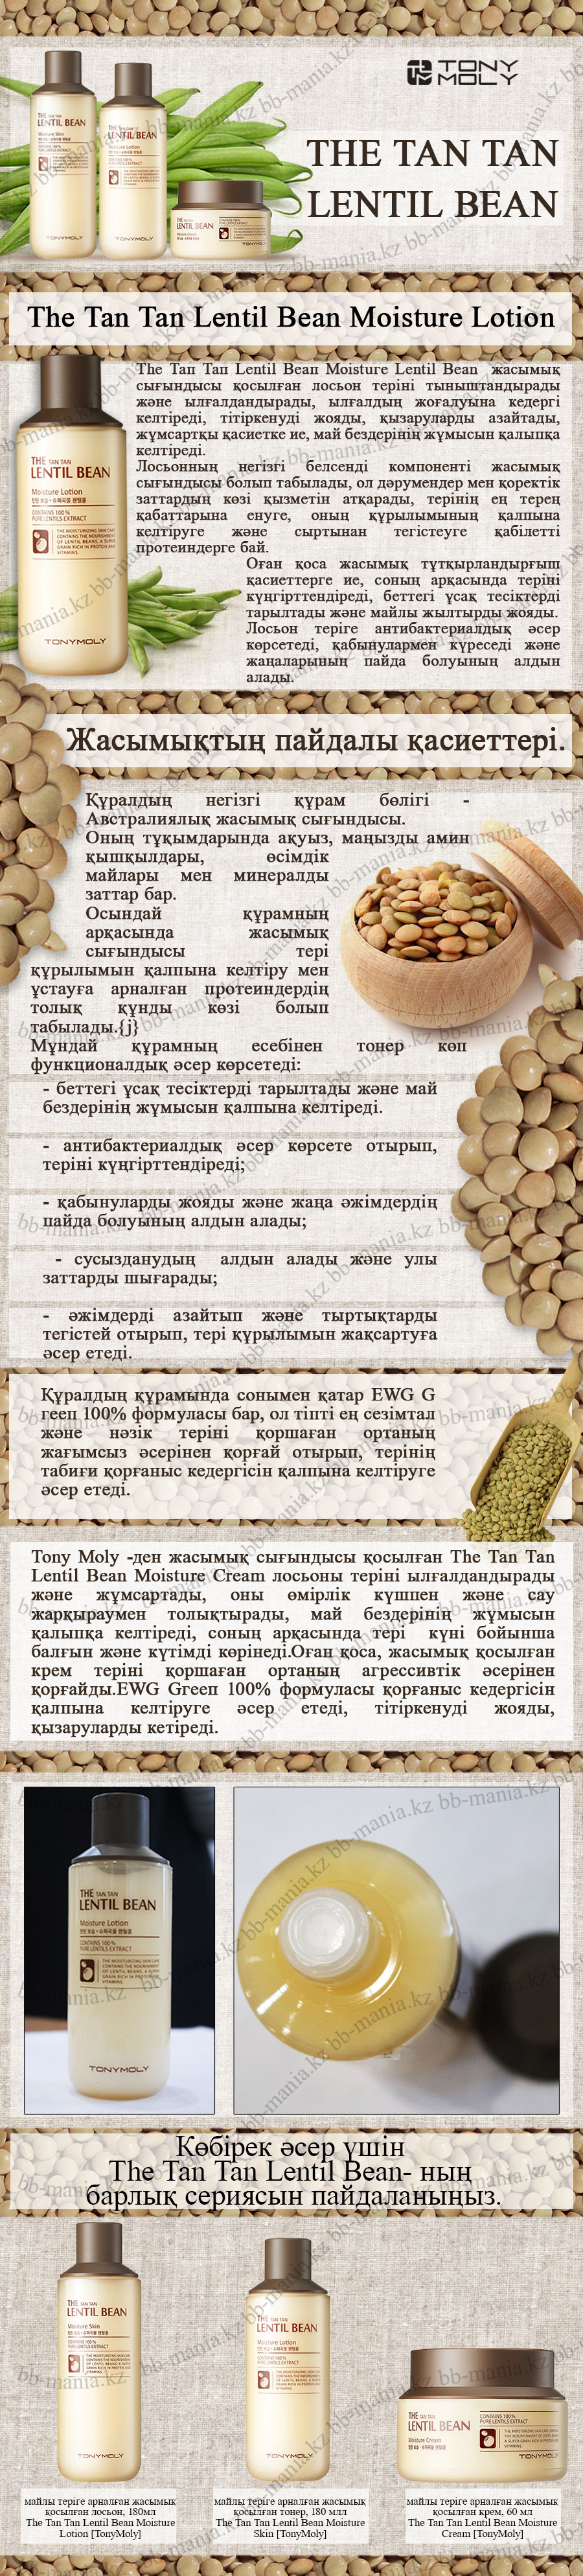 The-Tan-Tan-Lentil-Bean-Moisture-Lotion-[TonyMoly]-кз-min